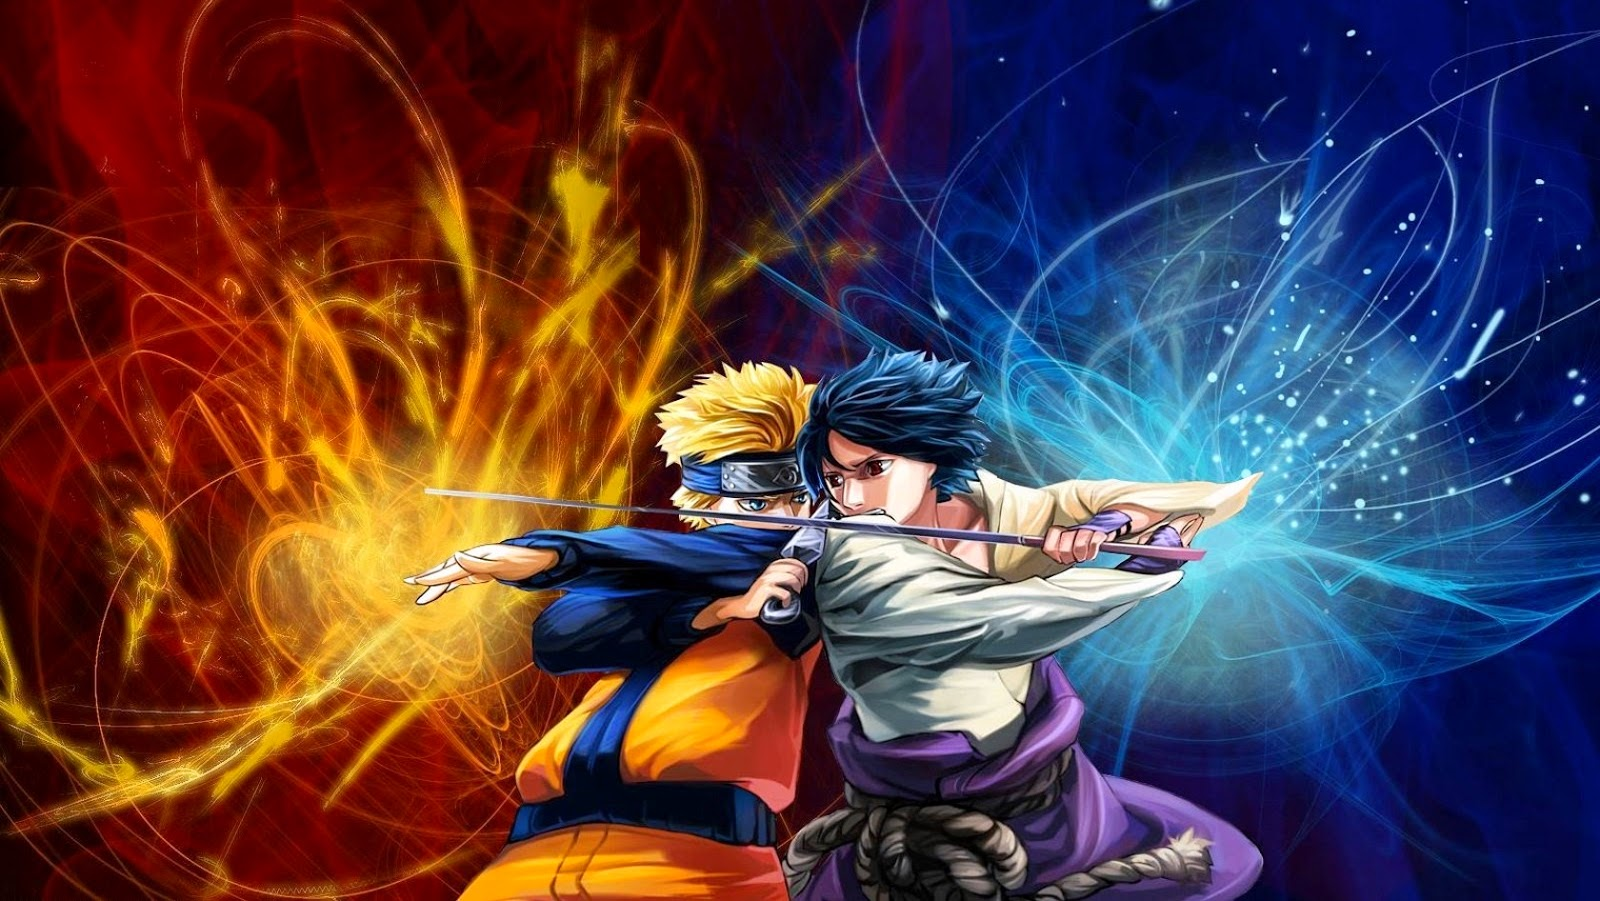 naruto vs  sasuke hd wallpapers